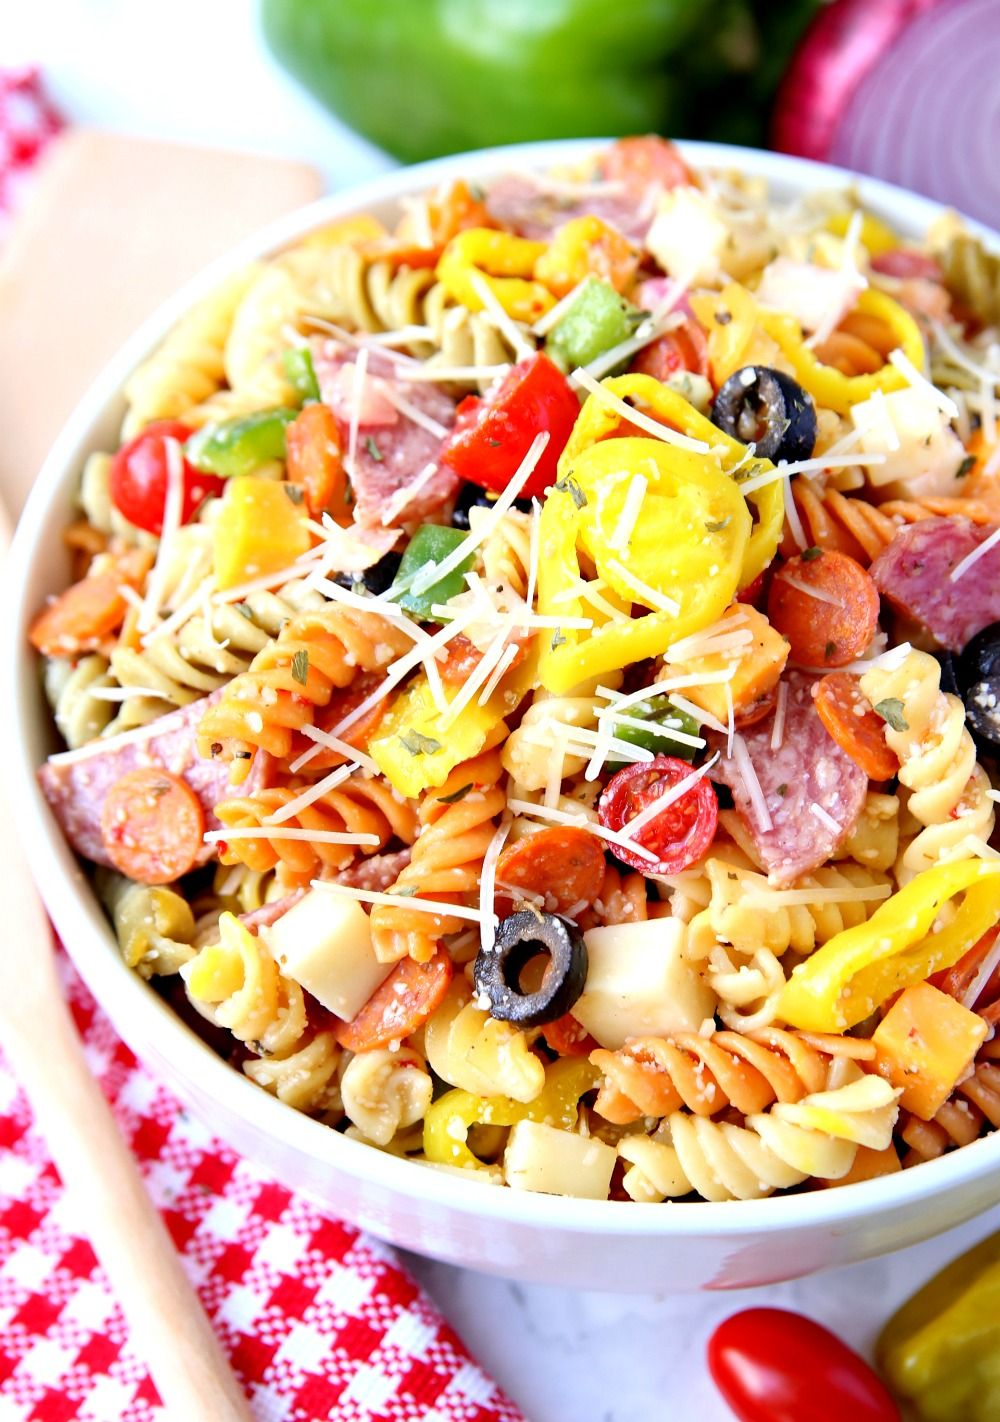 Pizza Pasta Salad Is The Best Recipe It S Full Of Flavor And Easy To Make